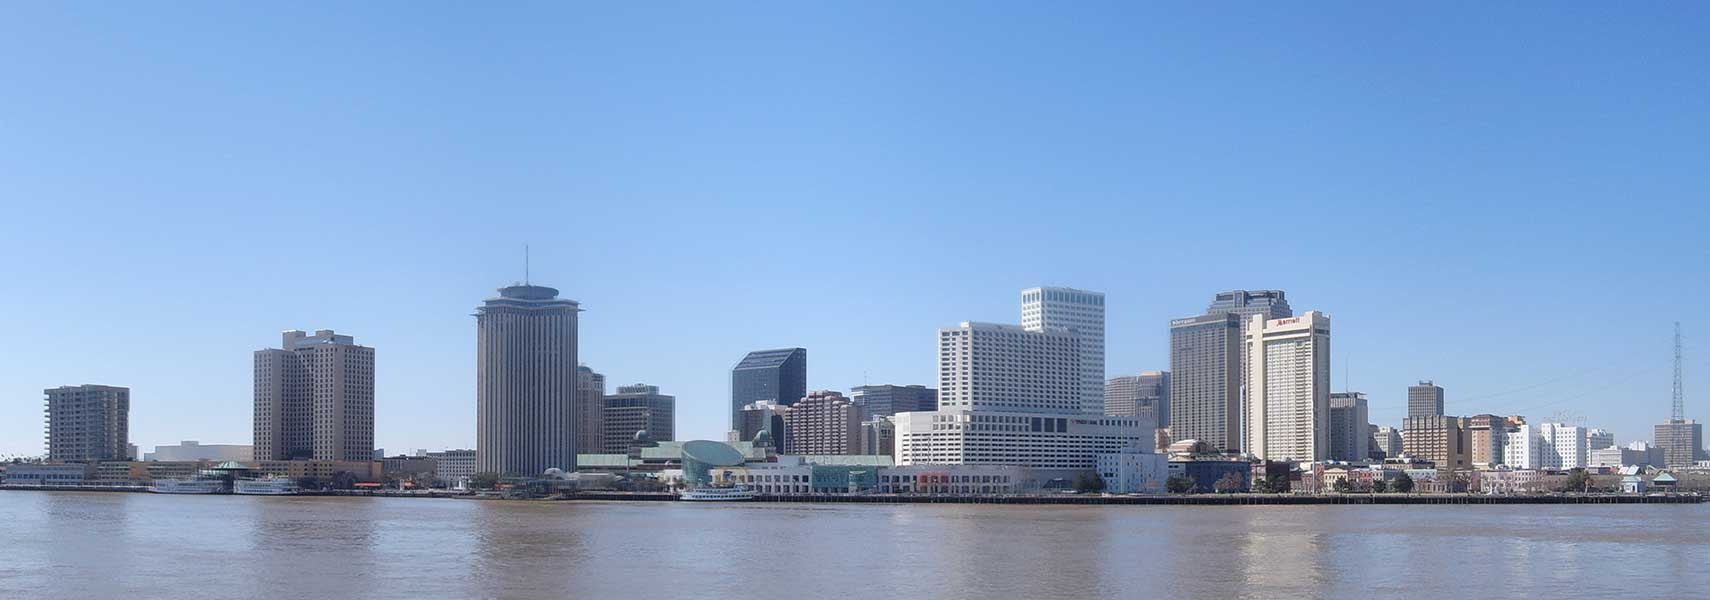 New Orleans In Usa Map.Google Map Of New Orleans Louisiana Usa Nations Online Project